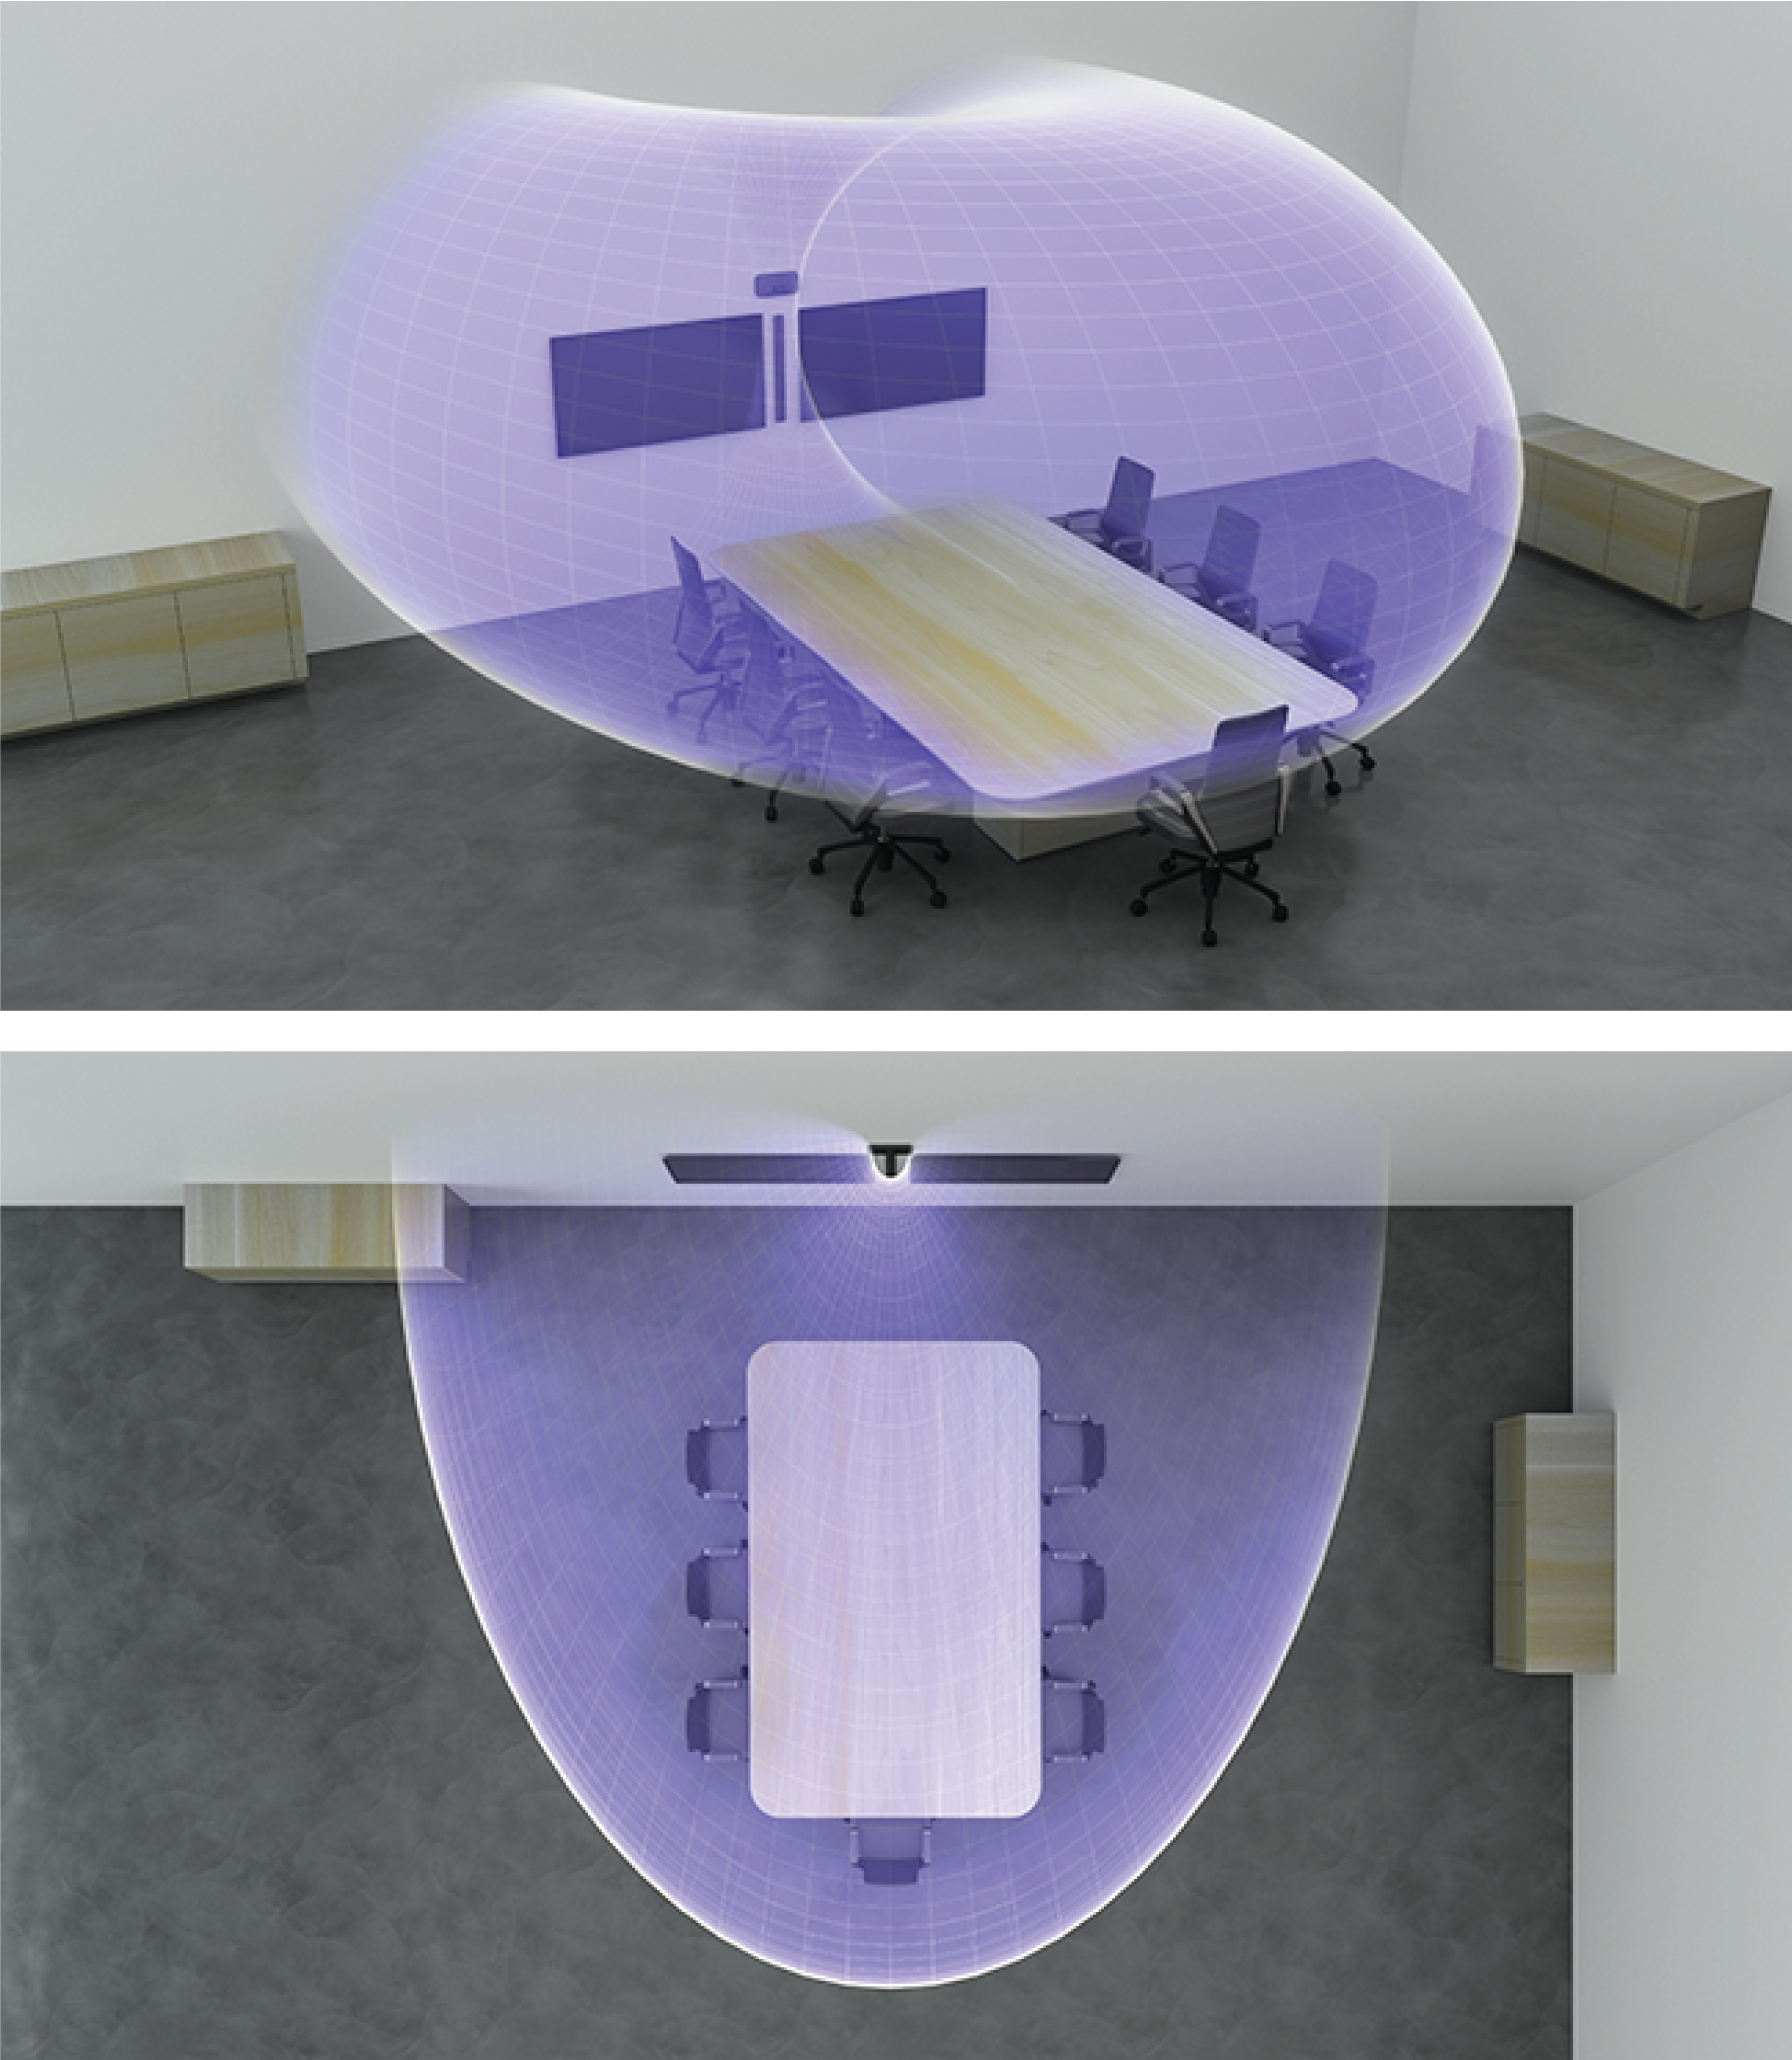 Illustration showing the MXA710's wall vertical coverage template in a confence room.